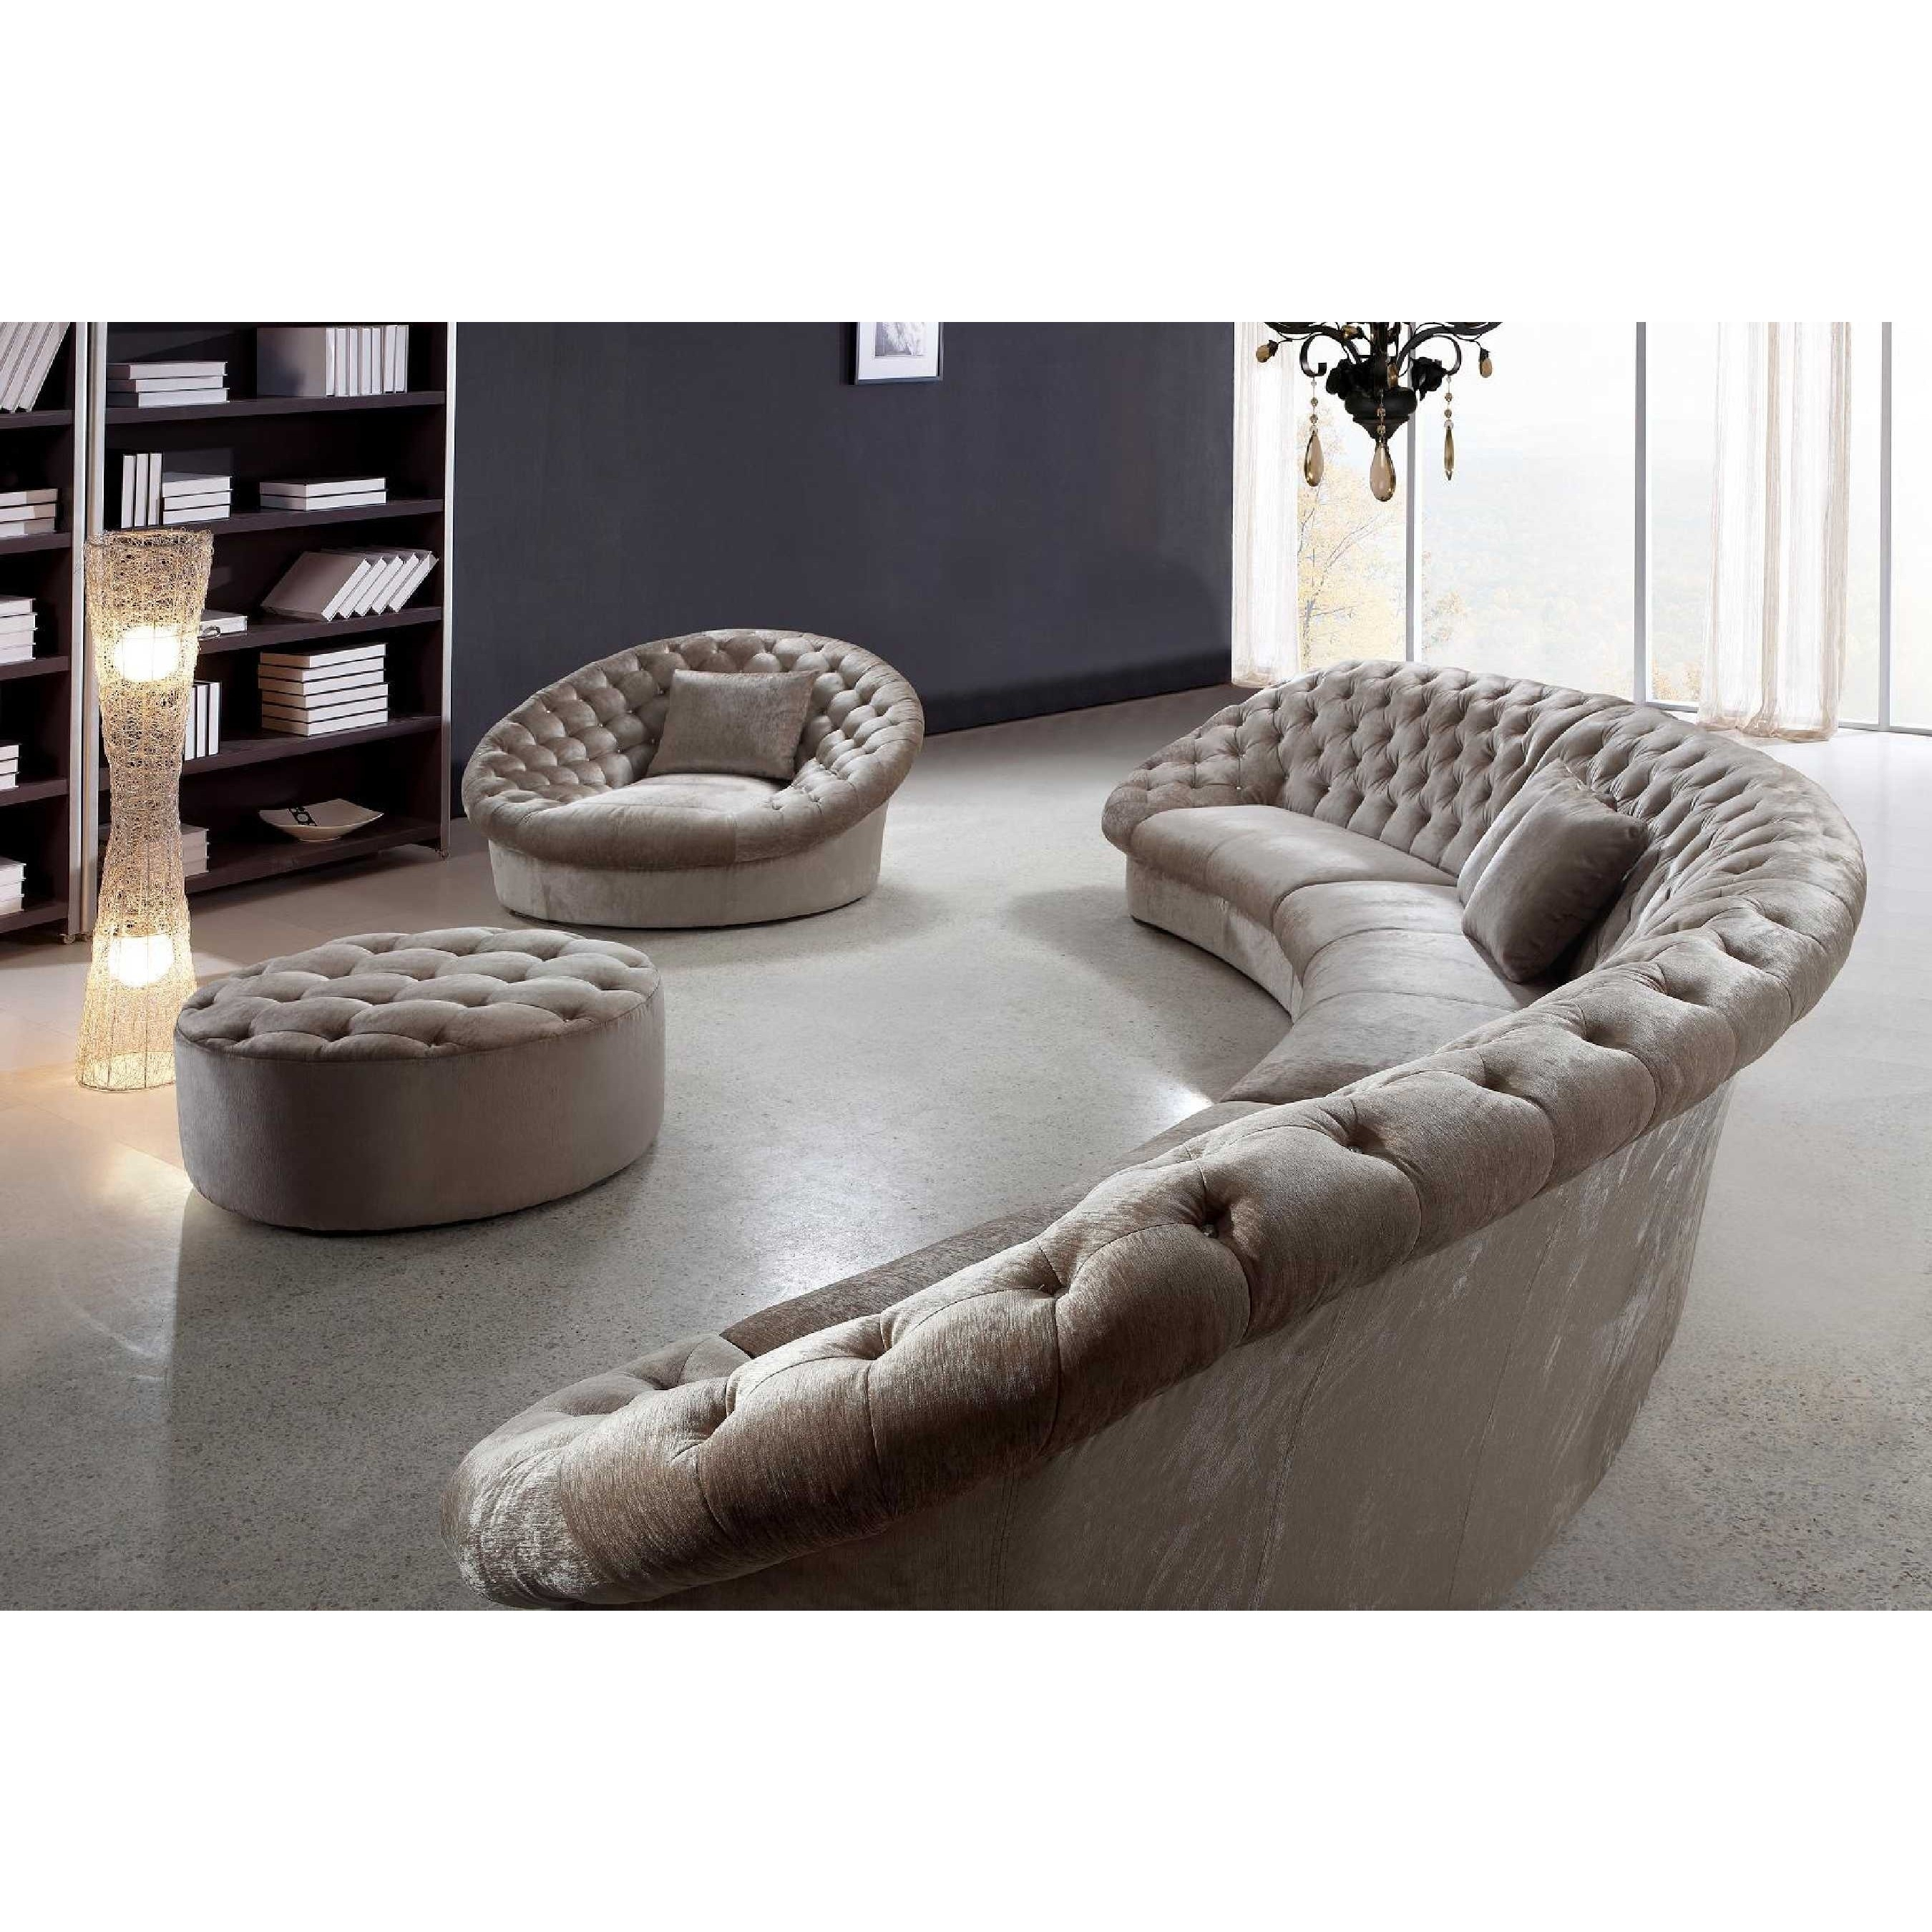 Sofa : Luxury Round Sectional Sofa Bed Curved Semi Circular Sofas Pertaining To Semicircular Sofas (View 9 of 10)